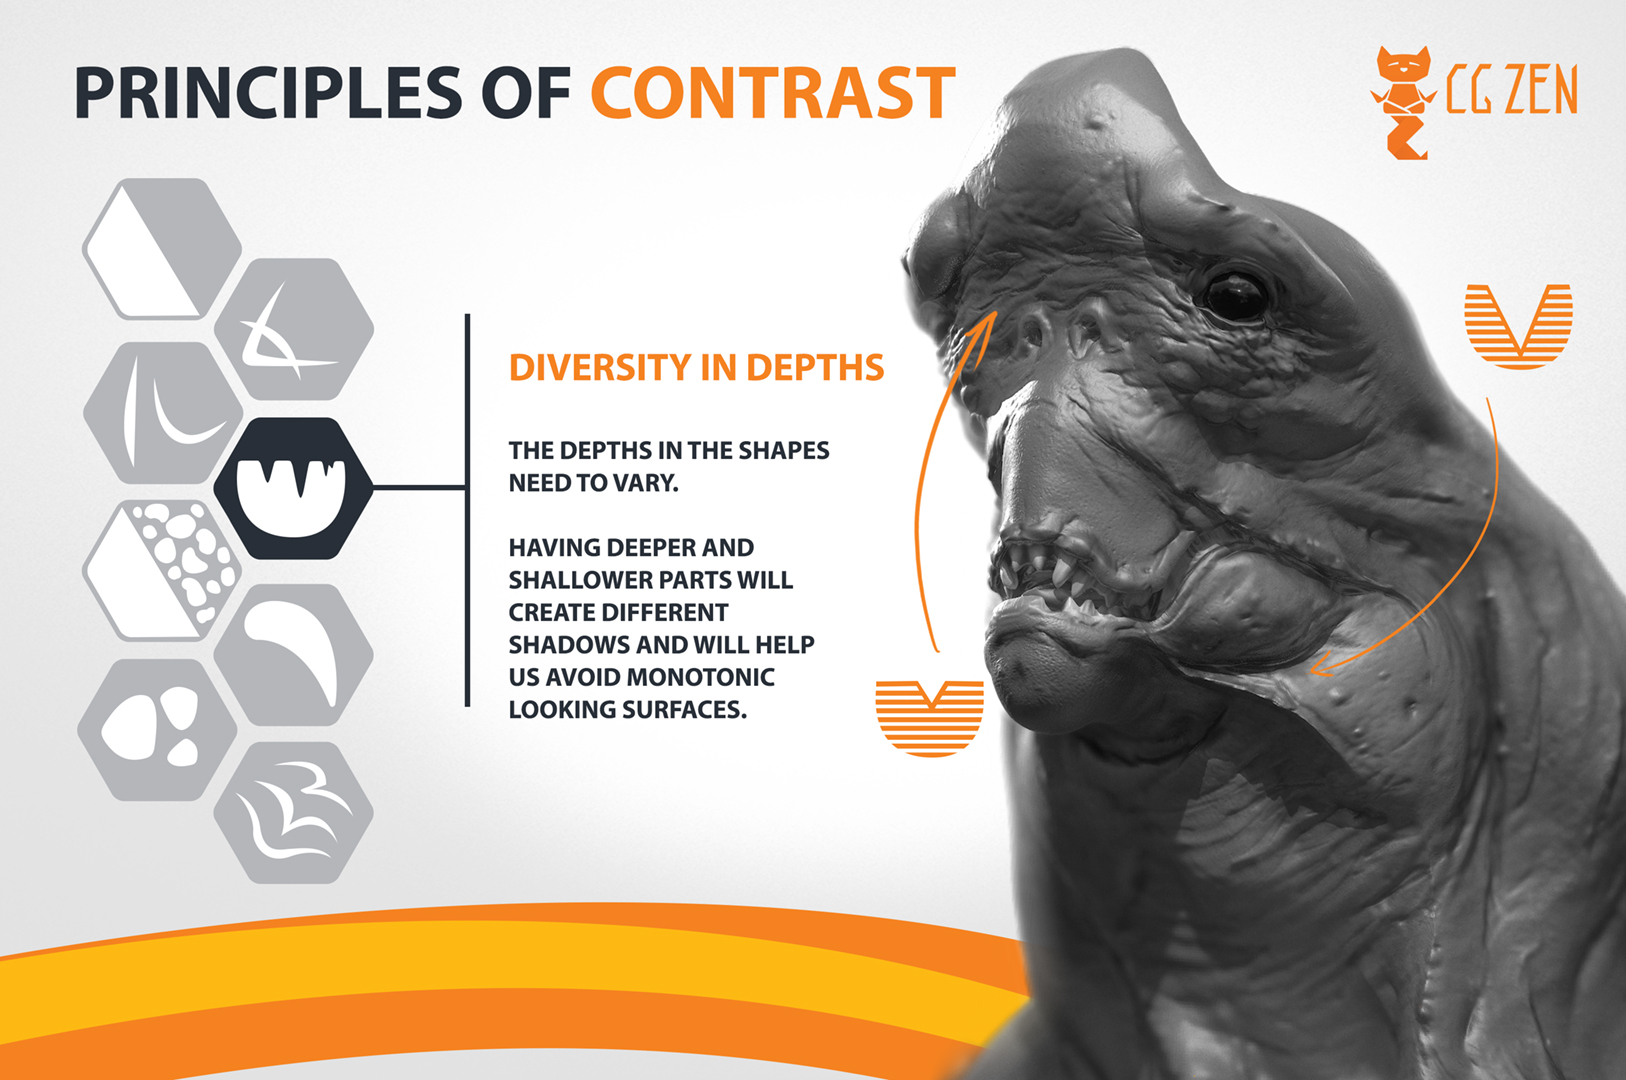 04-contrast-design-diffrent-depth-cgzen-EN